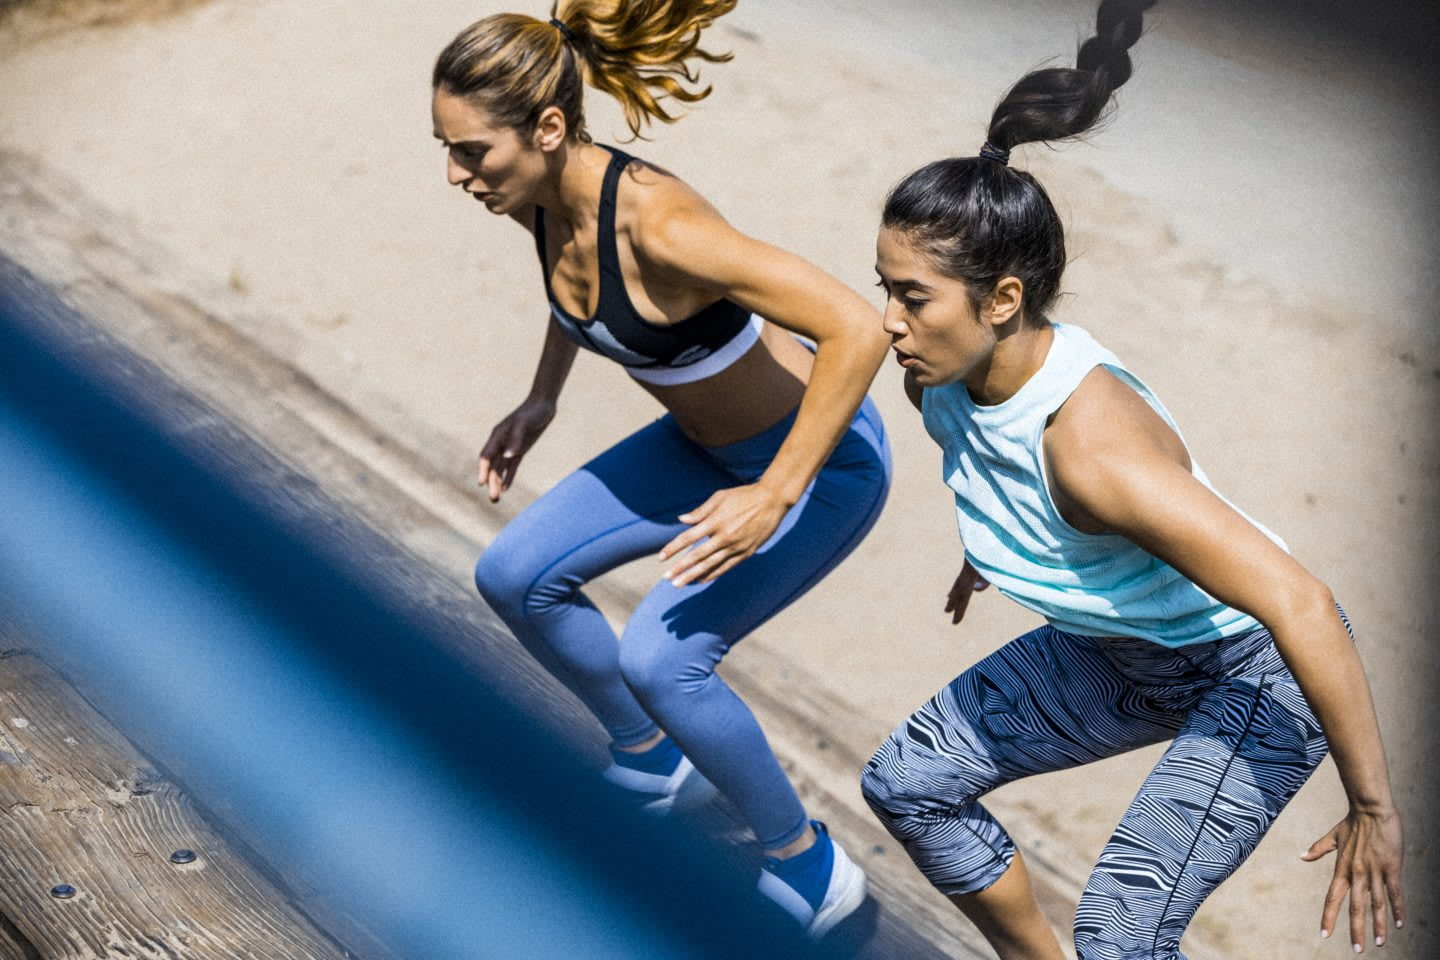 Two women partnering up for a workout.